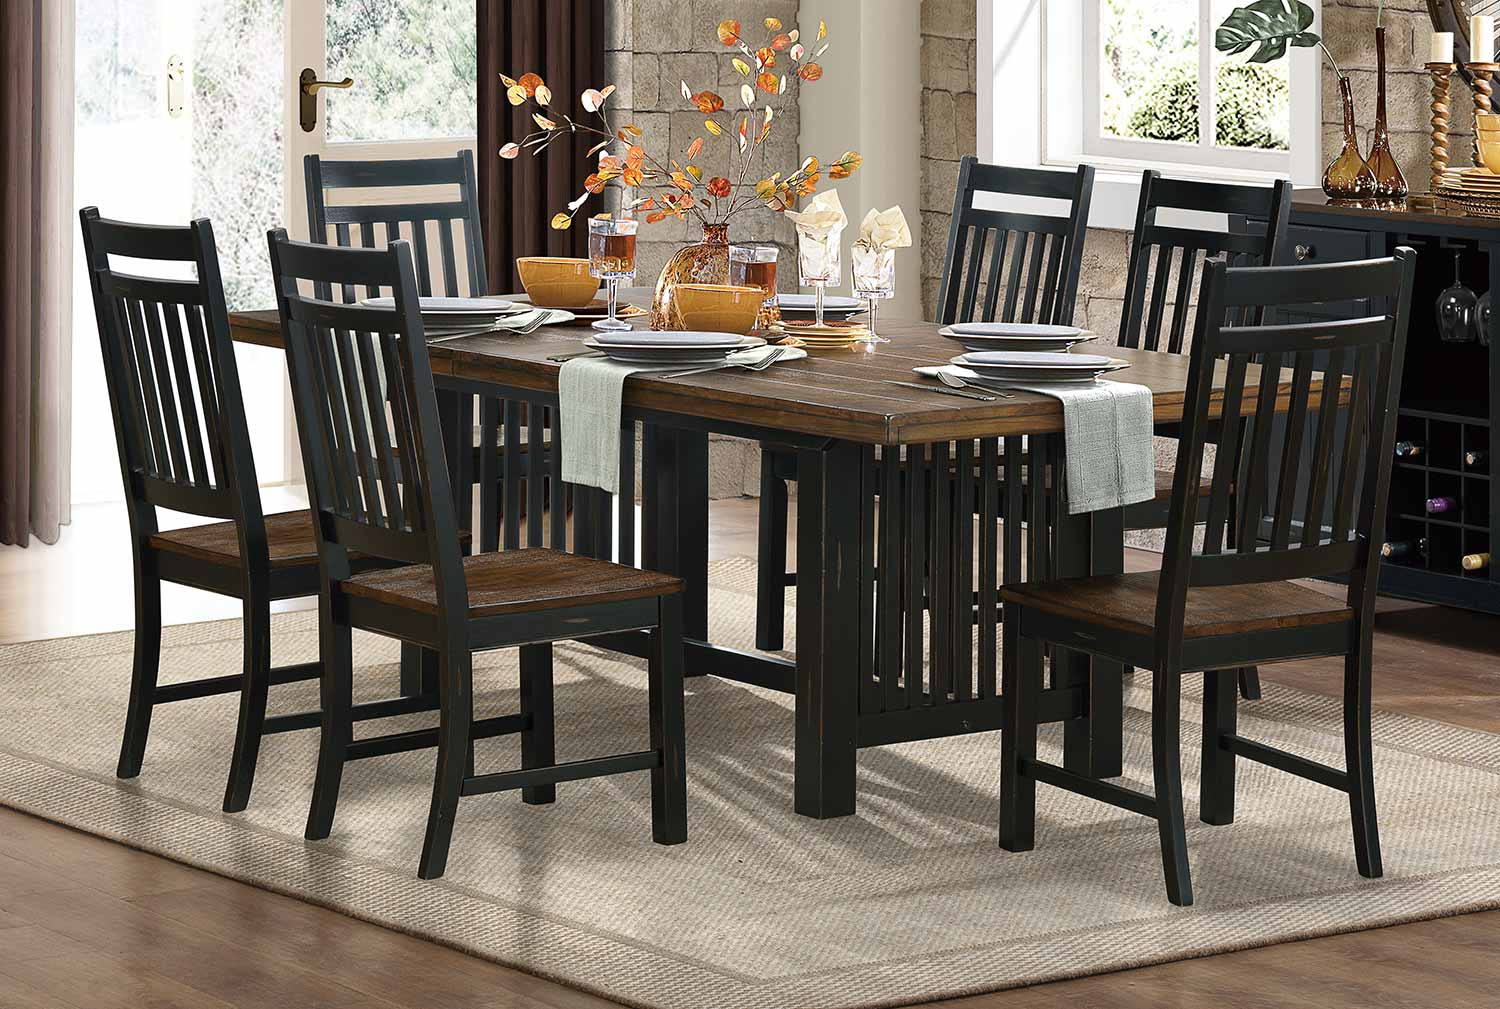 Homelegance Three Falls Dining Set - Black